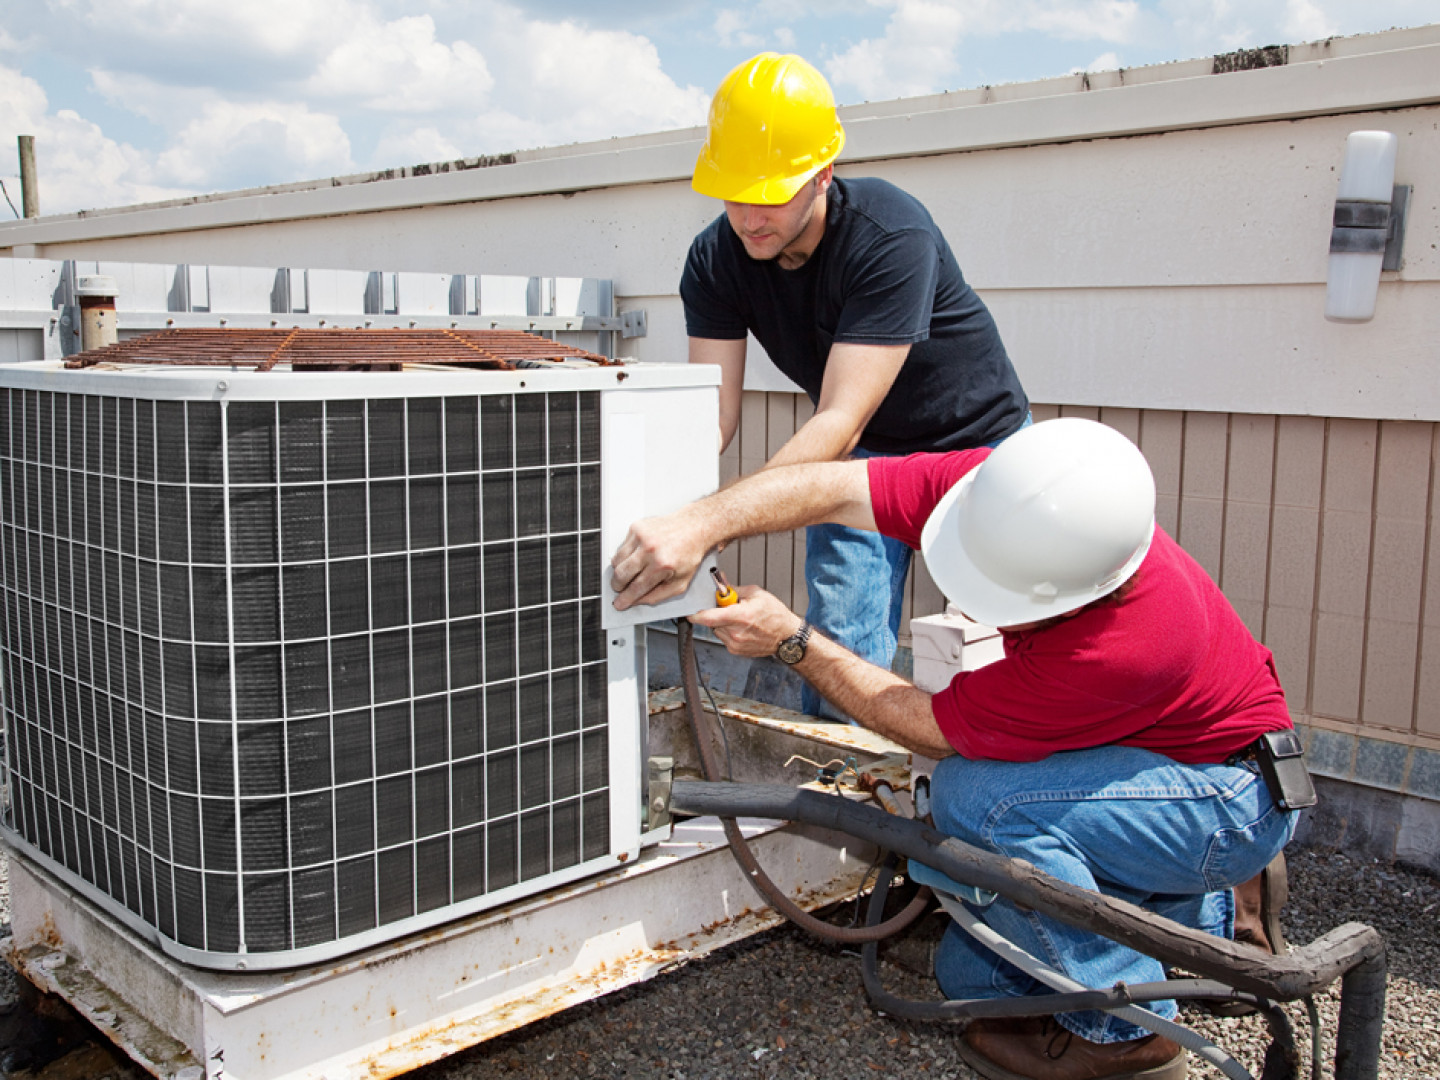 Need Commercial HVAC Services in the Billings, MT Area?